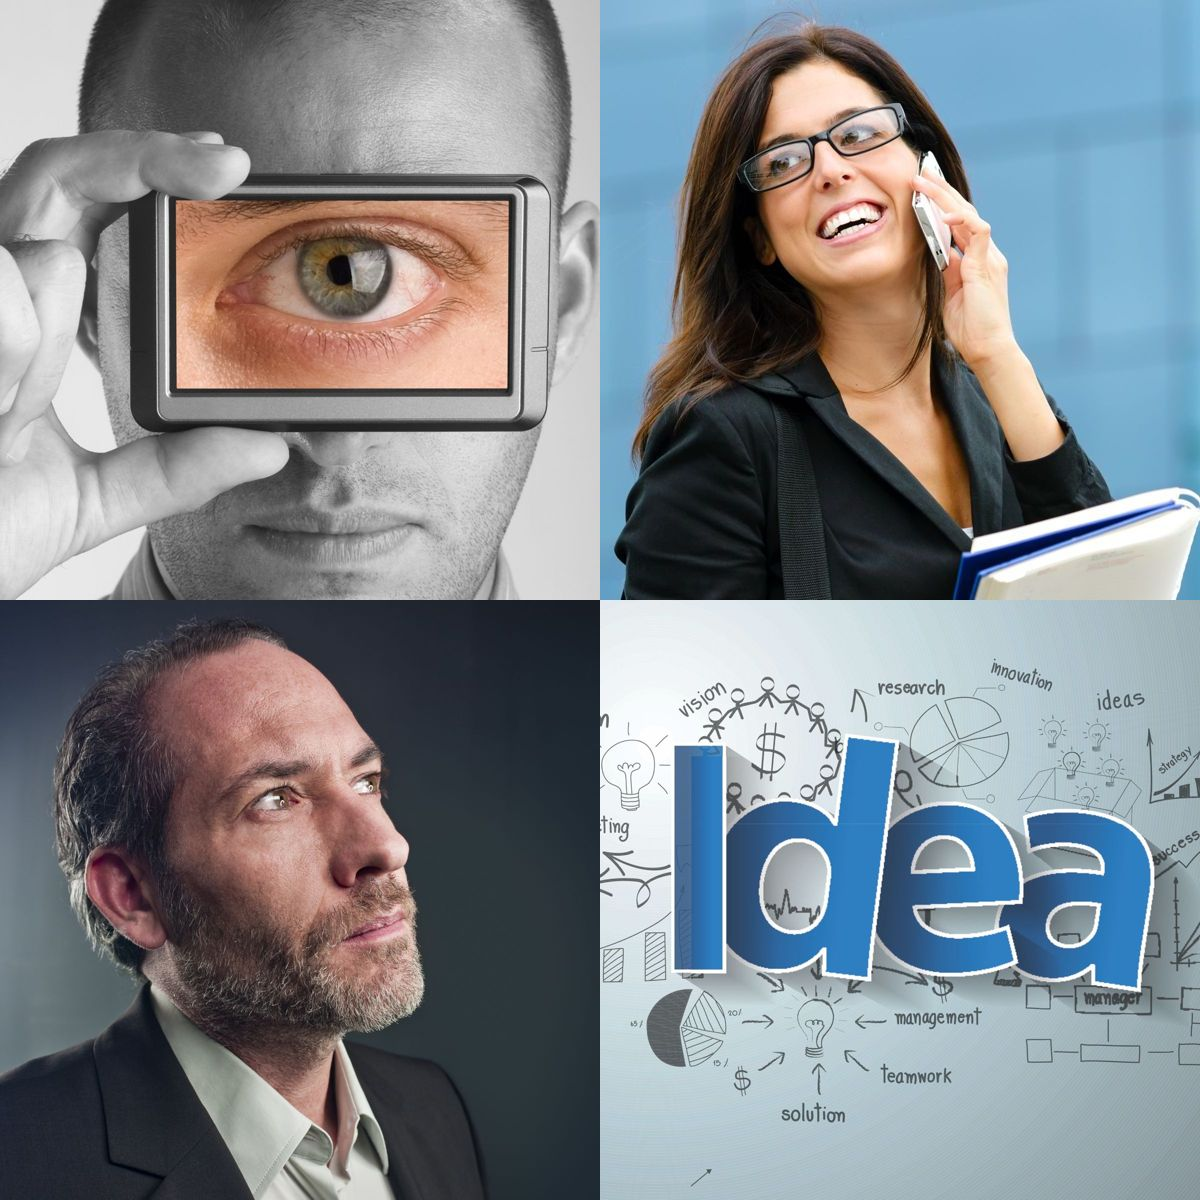 Casters of Vision & Implementers of Ideas